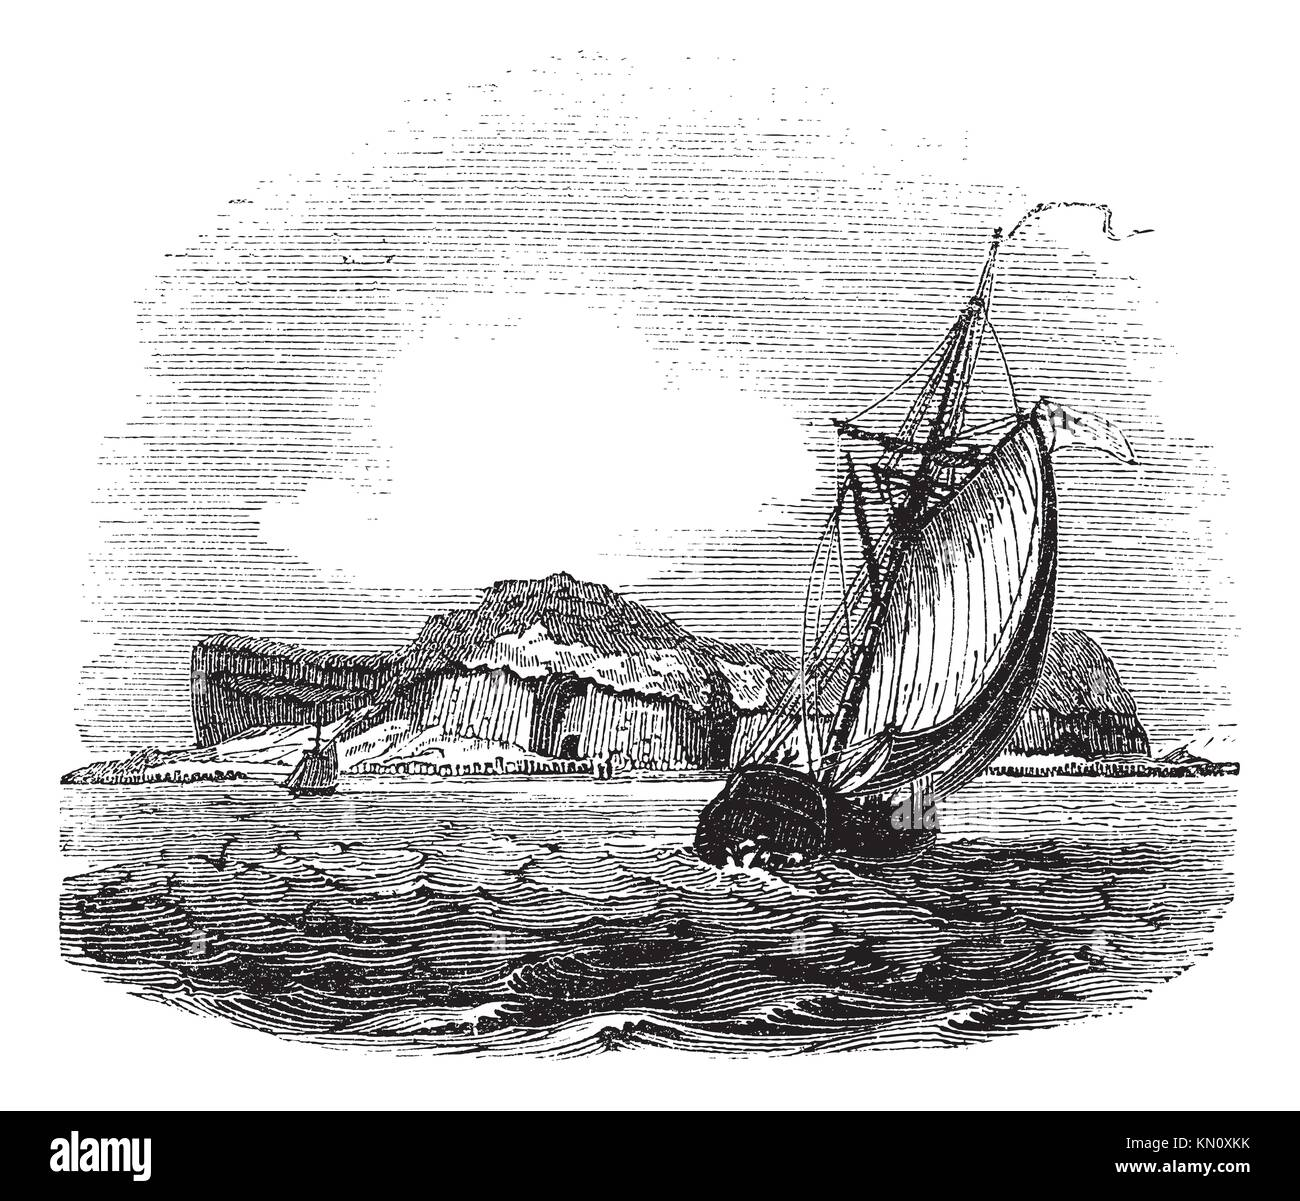 Staffa in Argyll and Bute, Scotland, during the 1890s, vintage engraving  Old engraved illustration of Staffa with - Stock Image